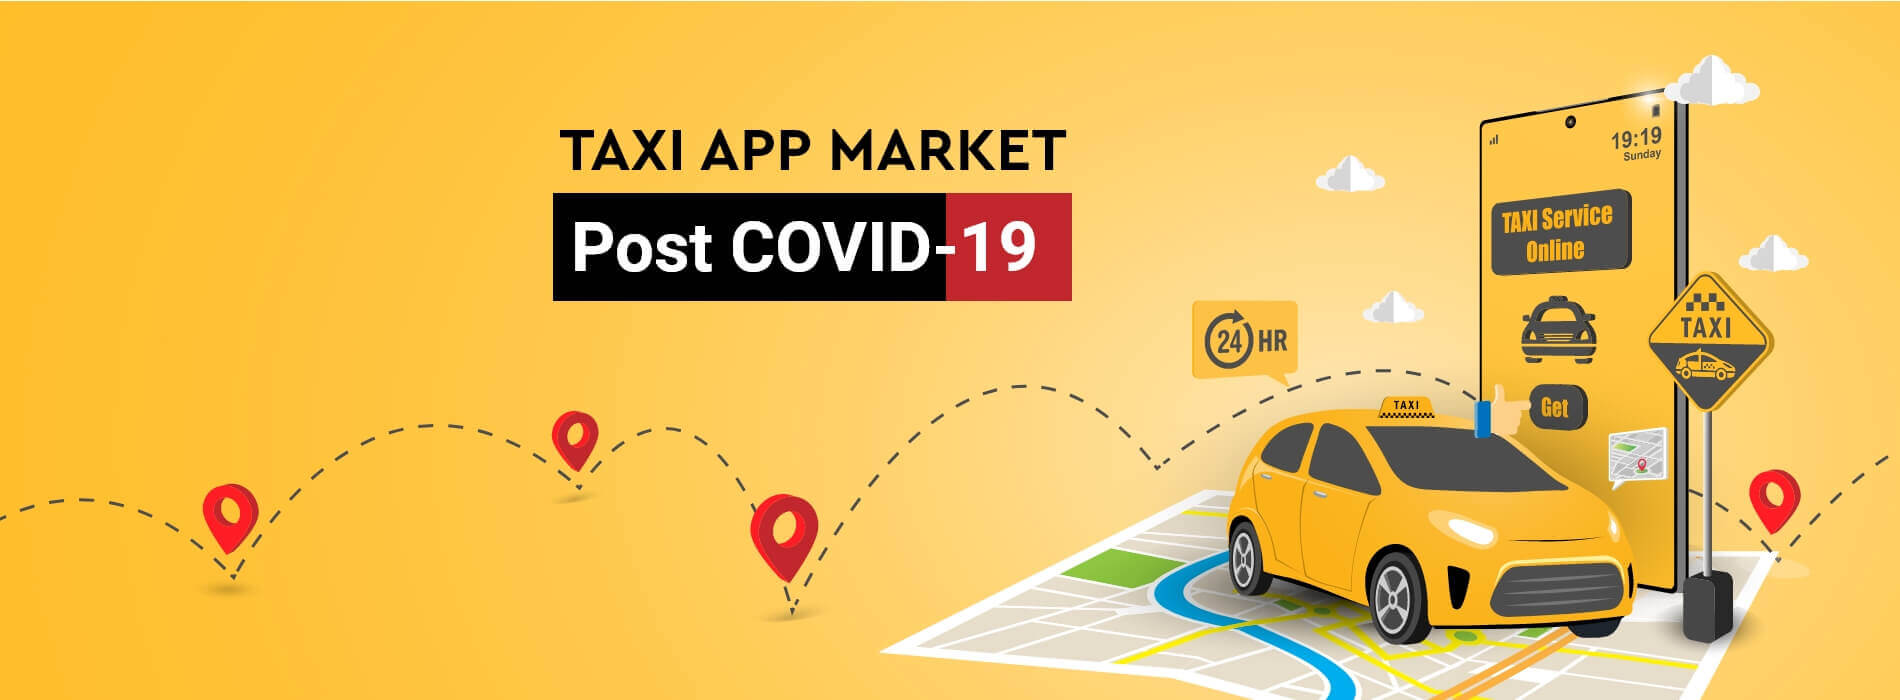 Reimagining the Transportation Industry for the Next Normal : Taxi App Market Post COVID-19